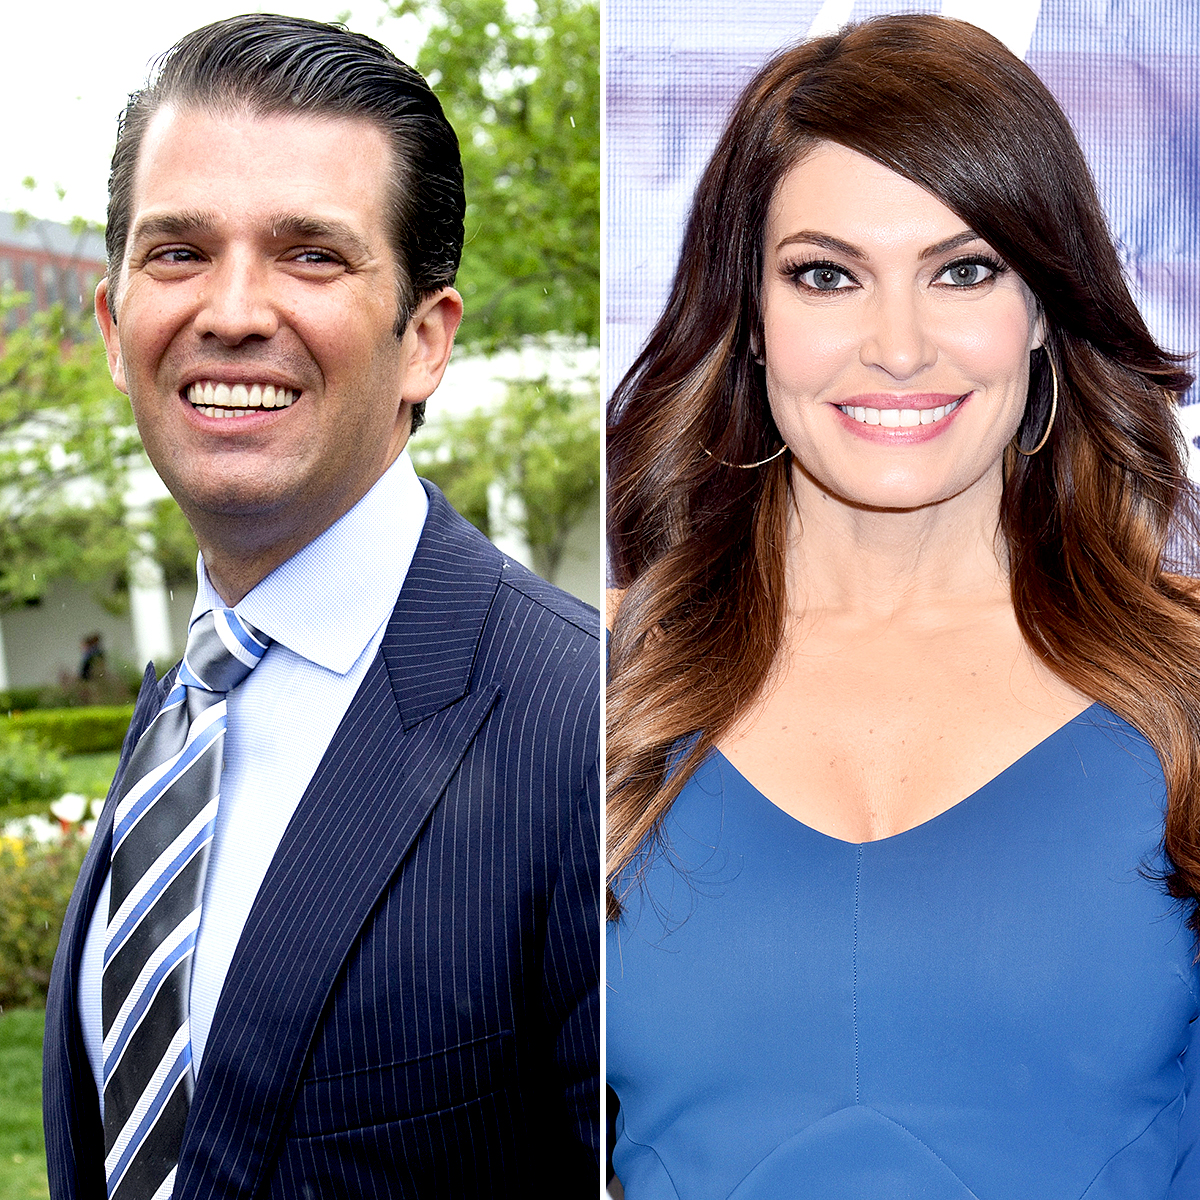 Kimberly guilfoyle who is she dating